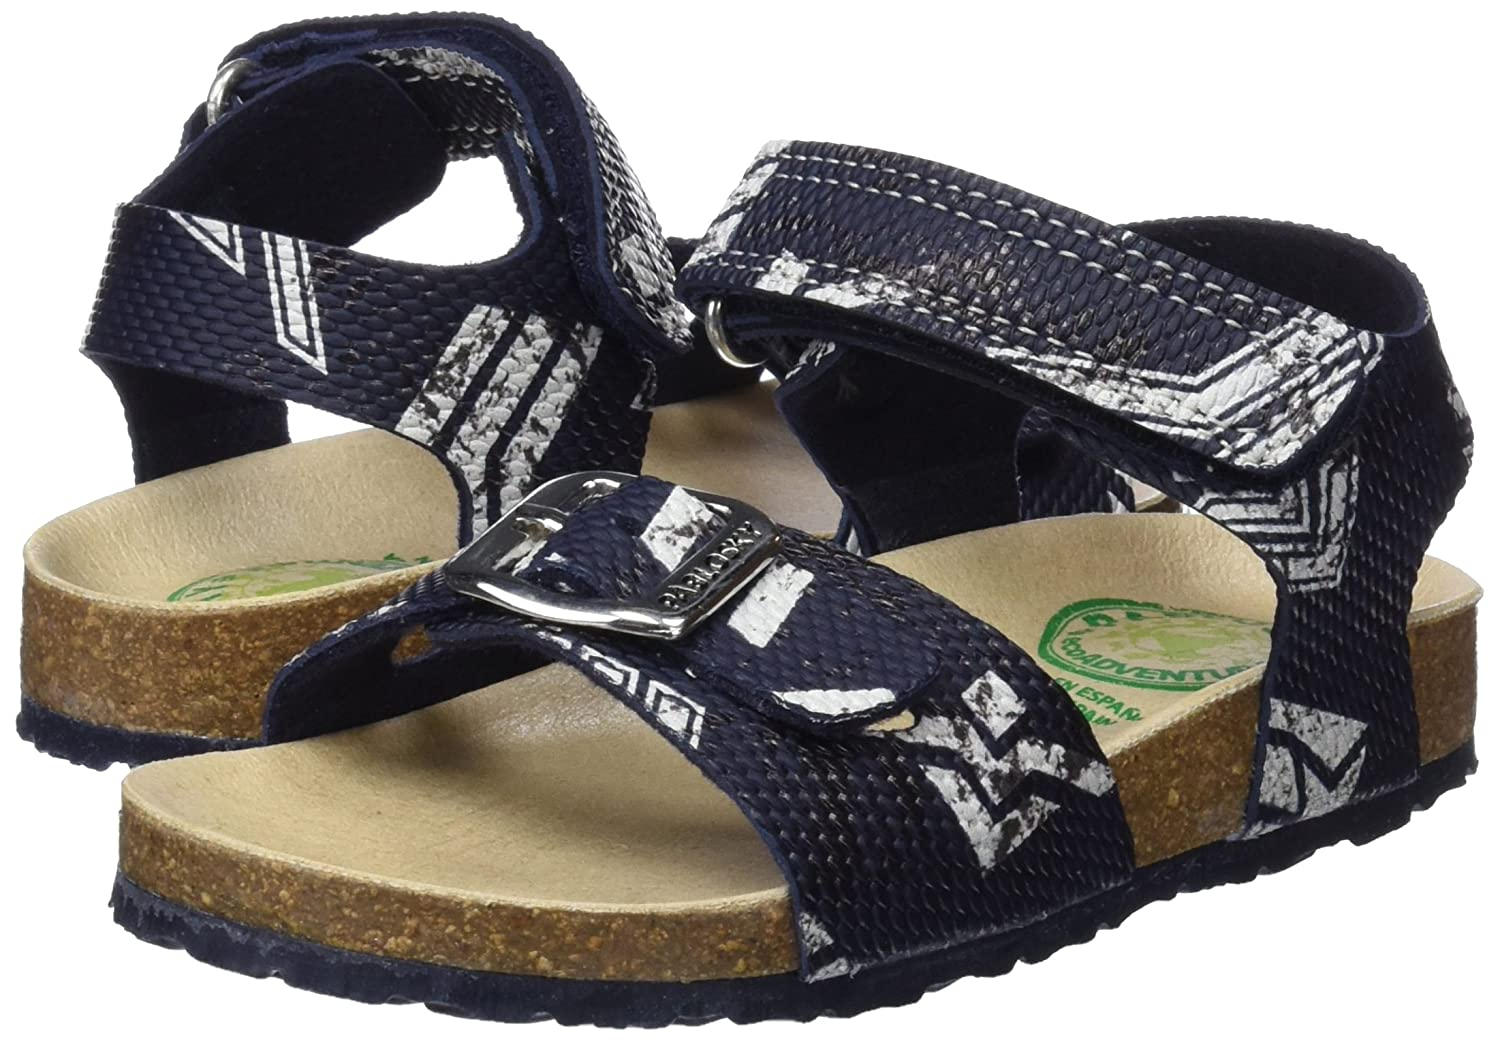 Pablosky Boys/' 584520 Open Toe Sandals